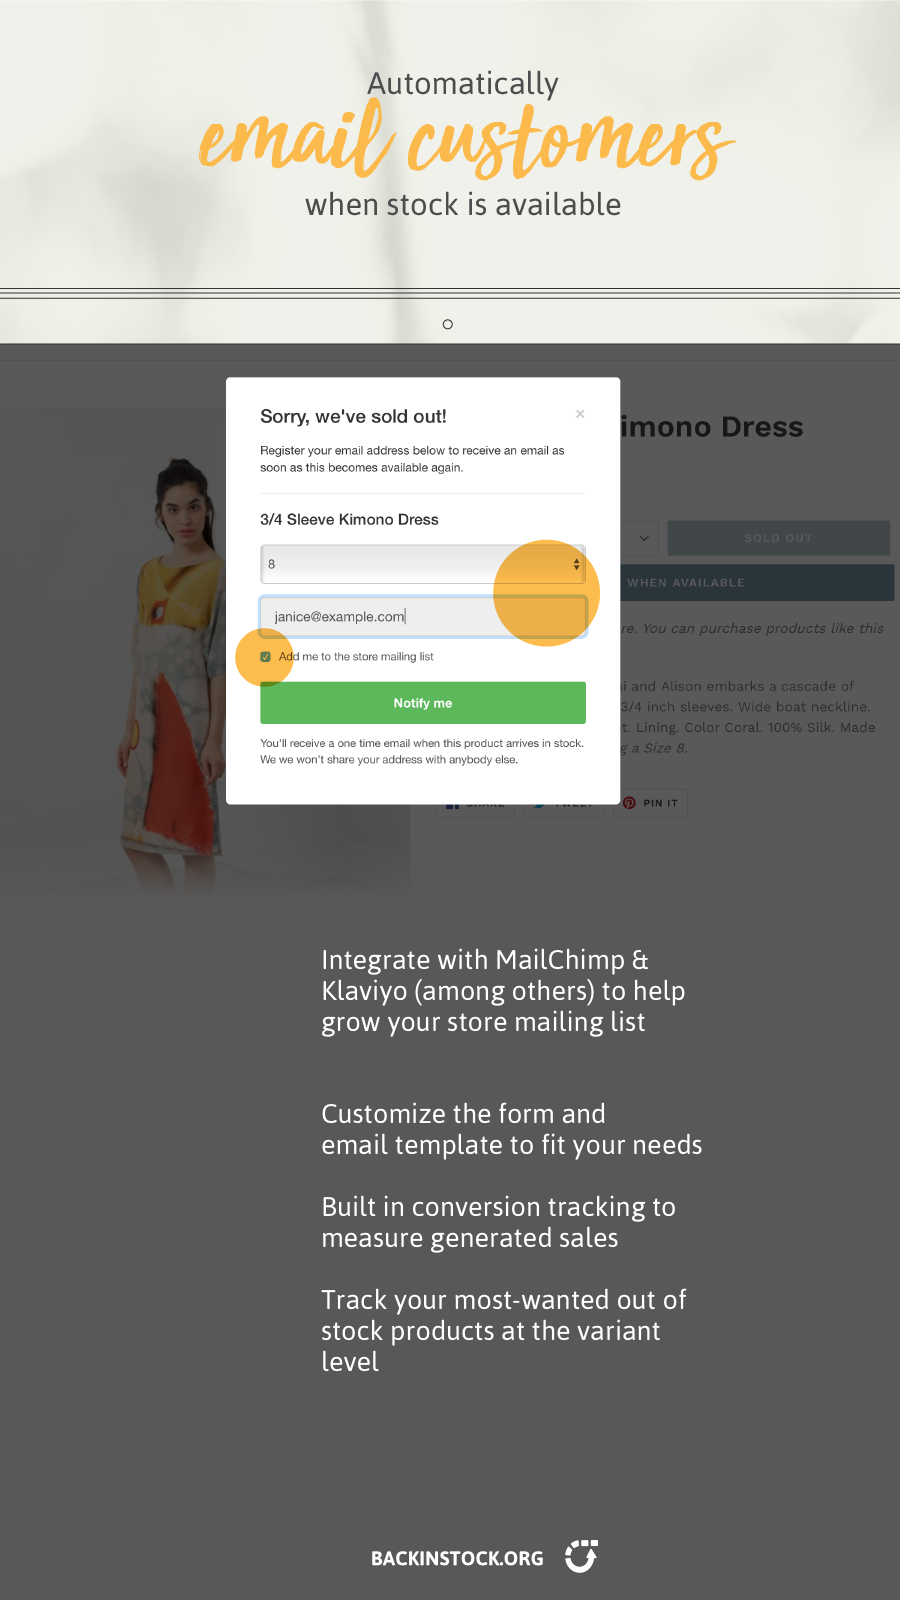 Automatically email a customer when stock is available